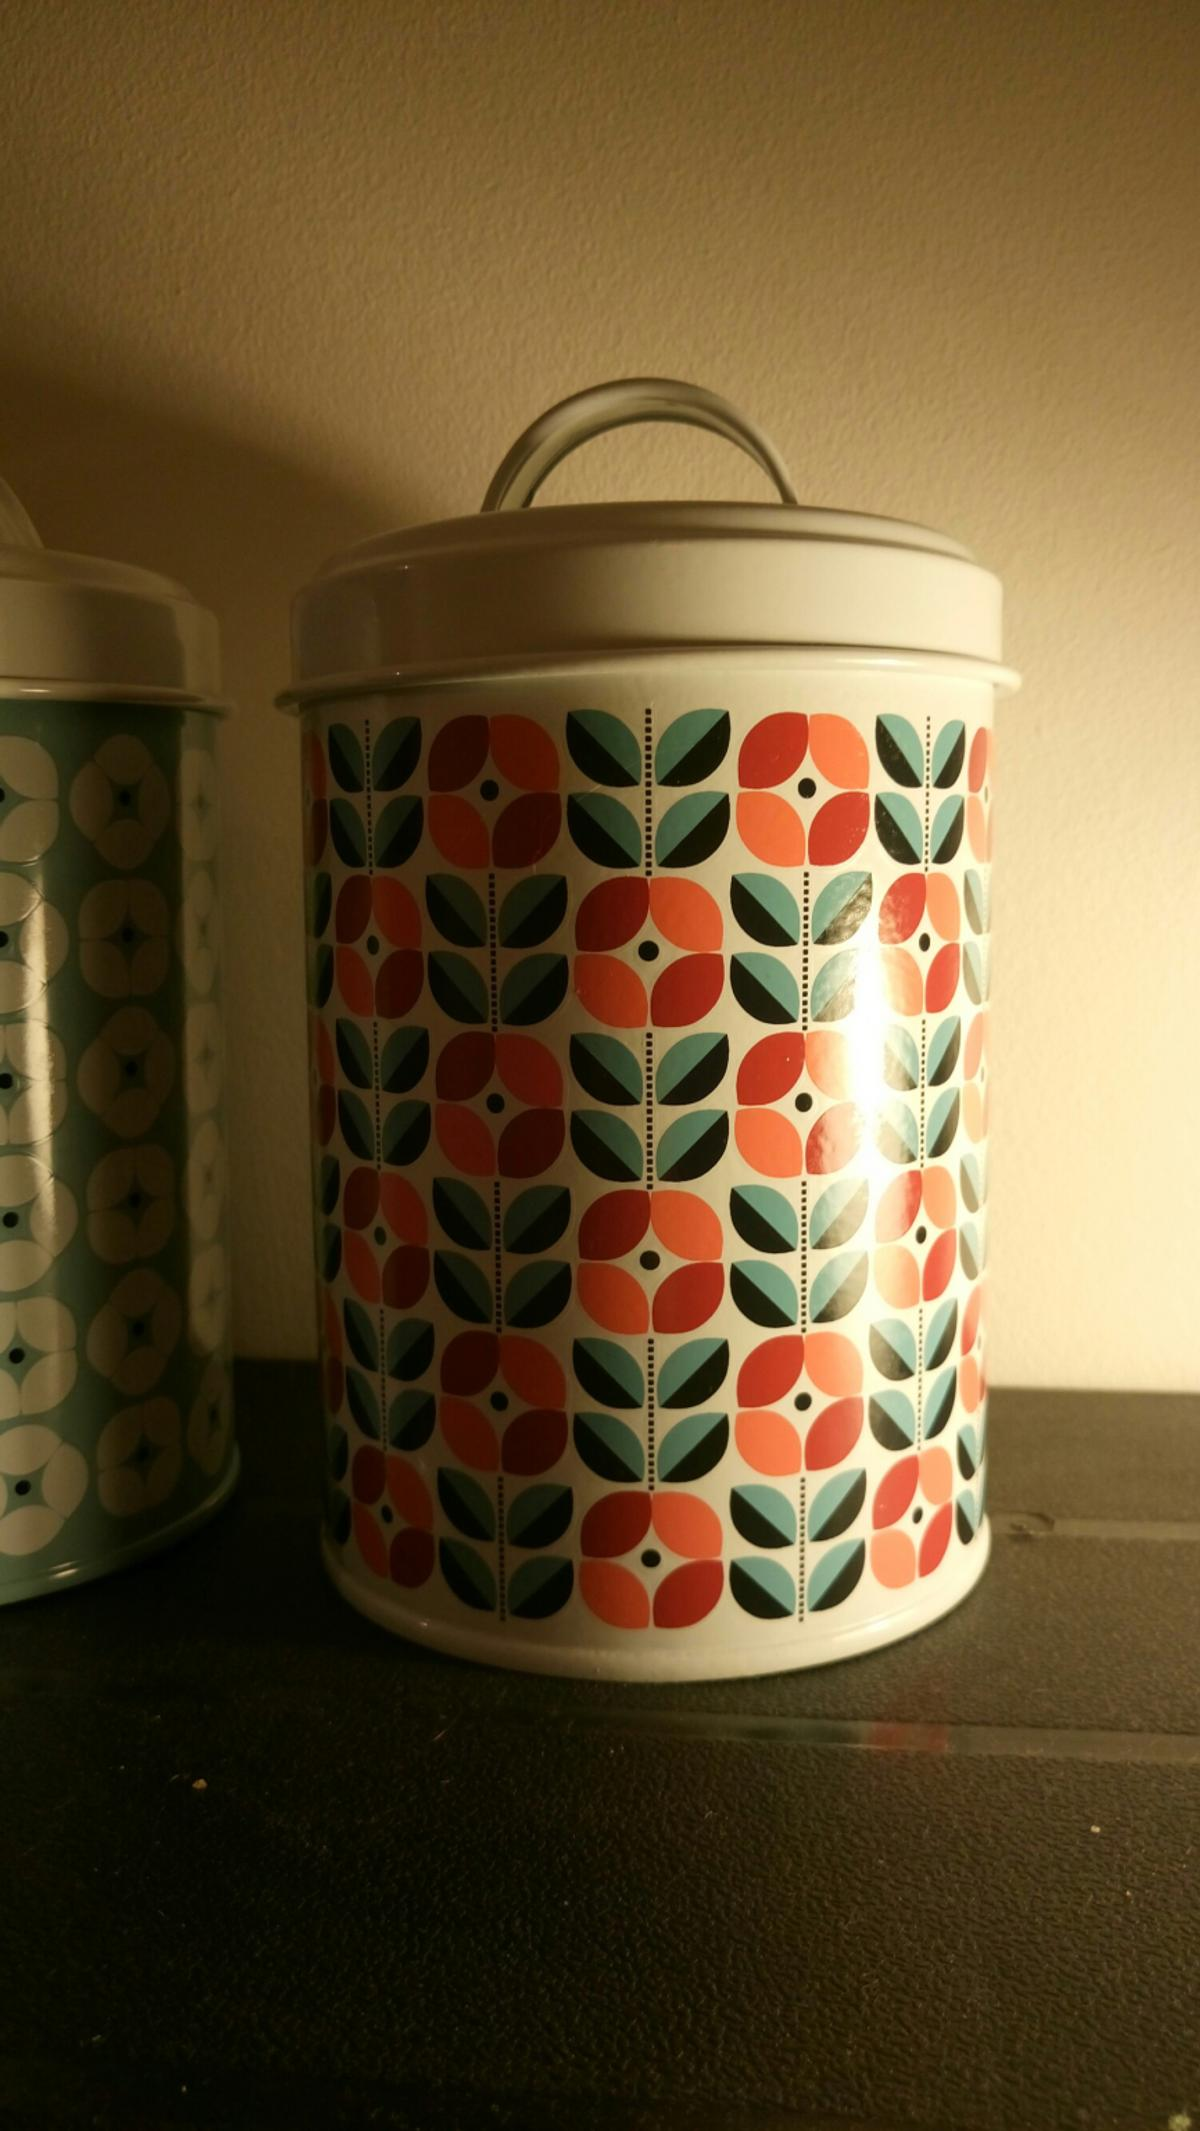 new tins, ideal for teas, biscuits or storage containers collect from se15